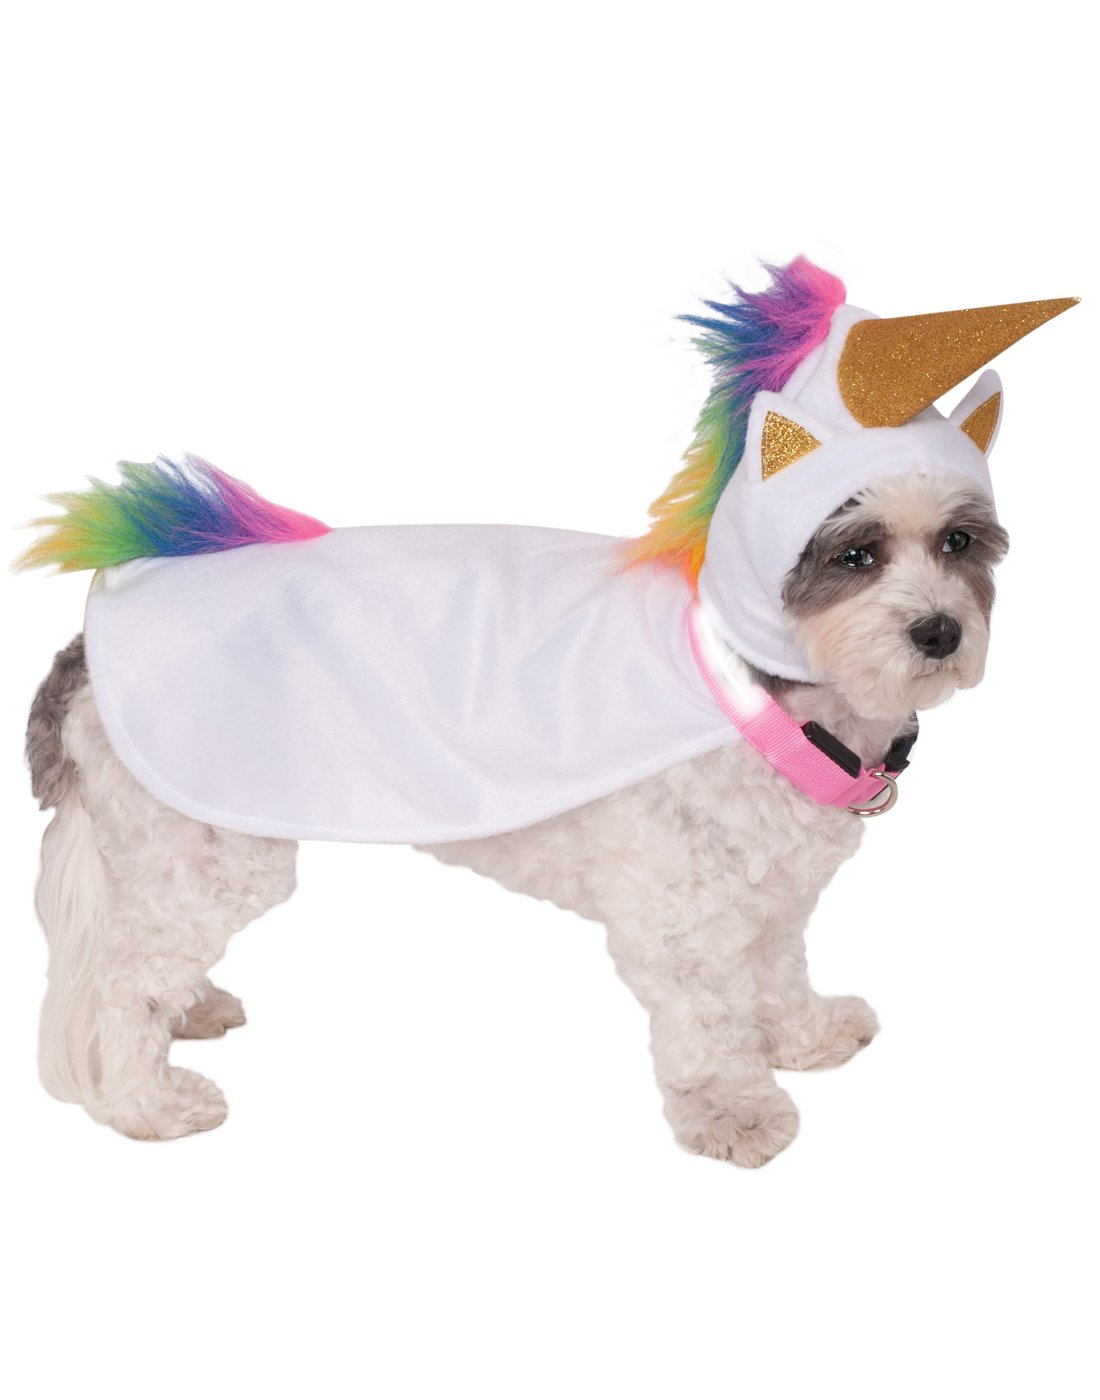 Rubies Costume Company Unicorn Cape with Hood and Light-Up Collar Pet Costume, XX-Large